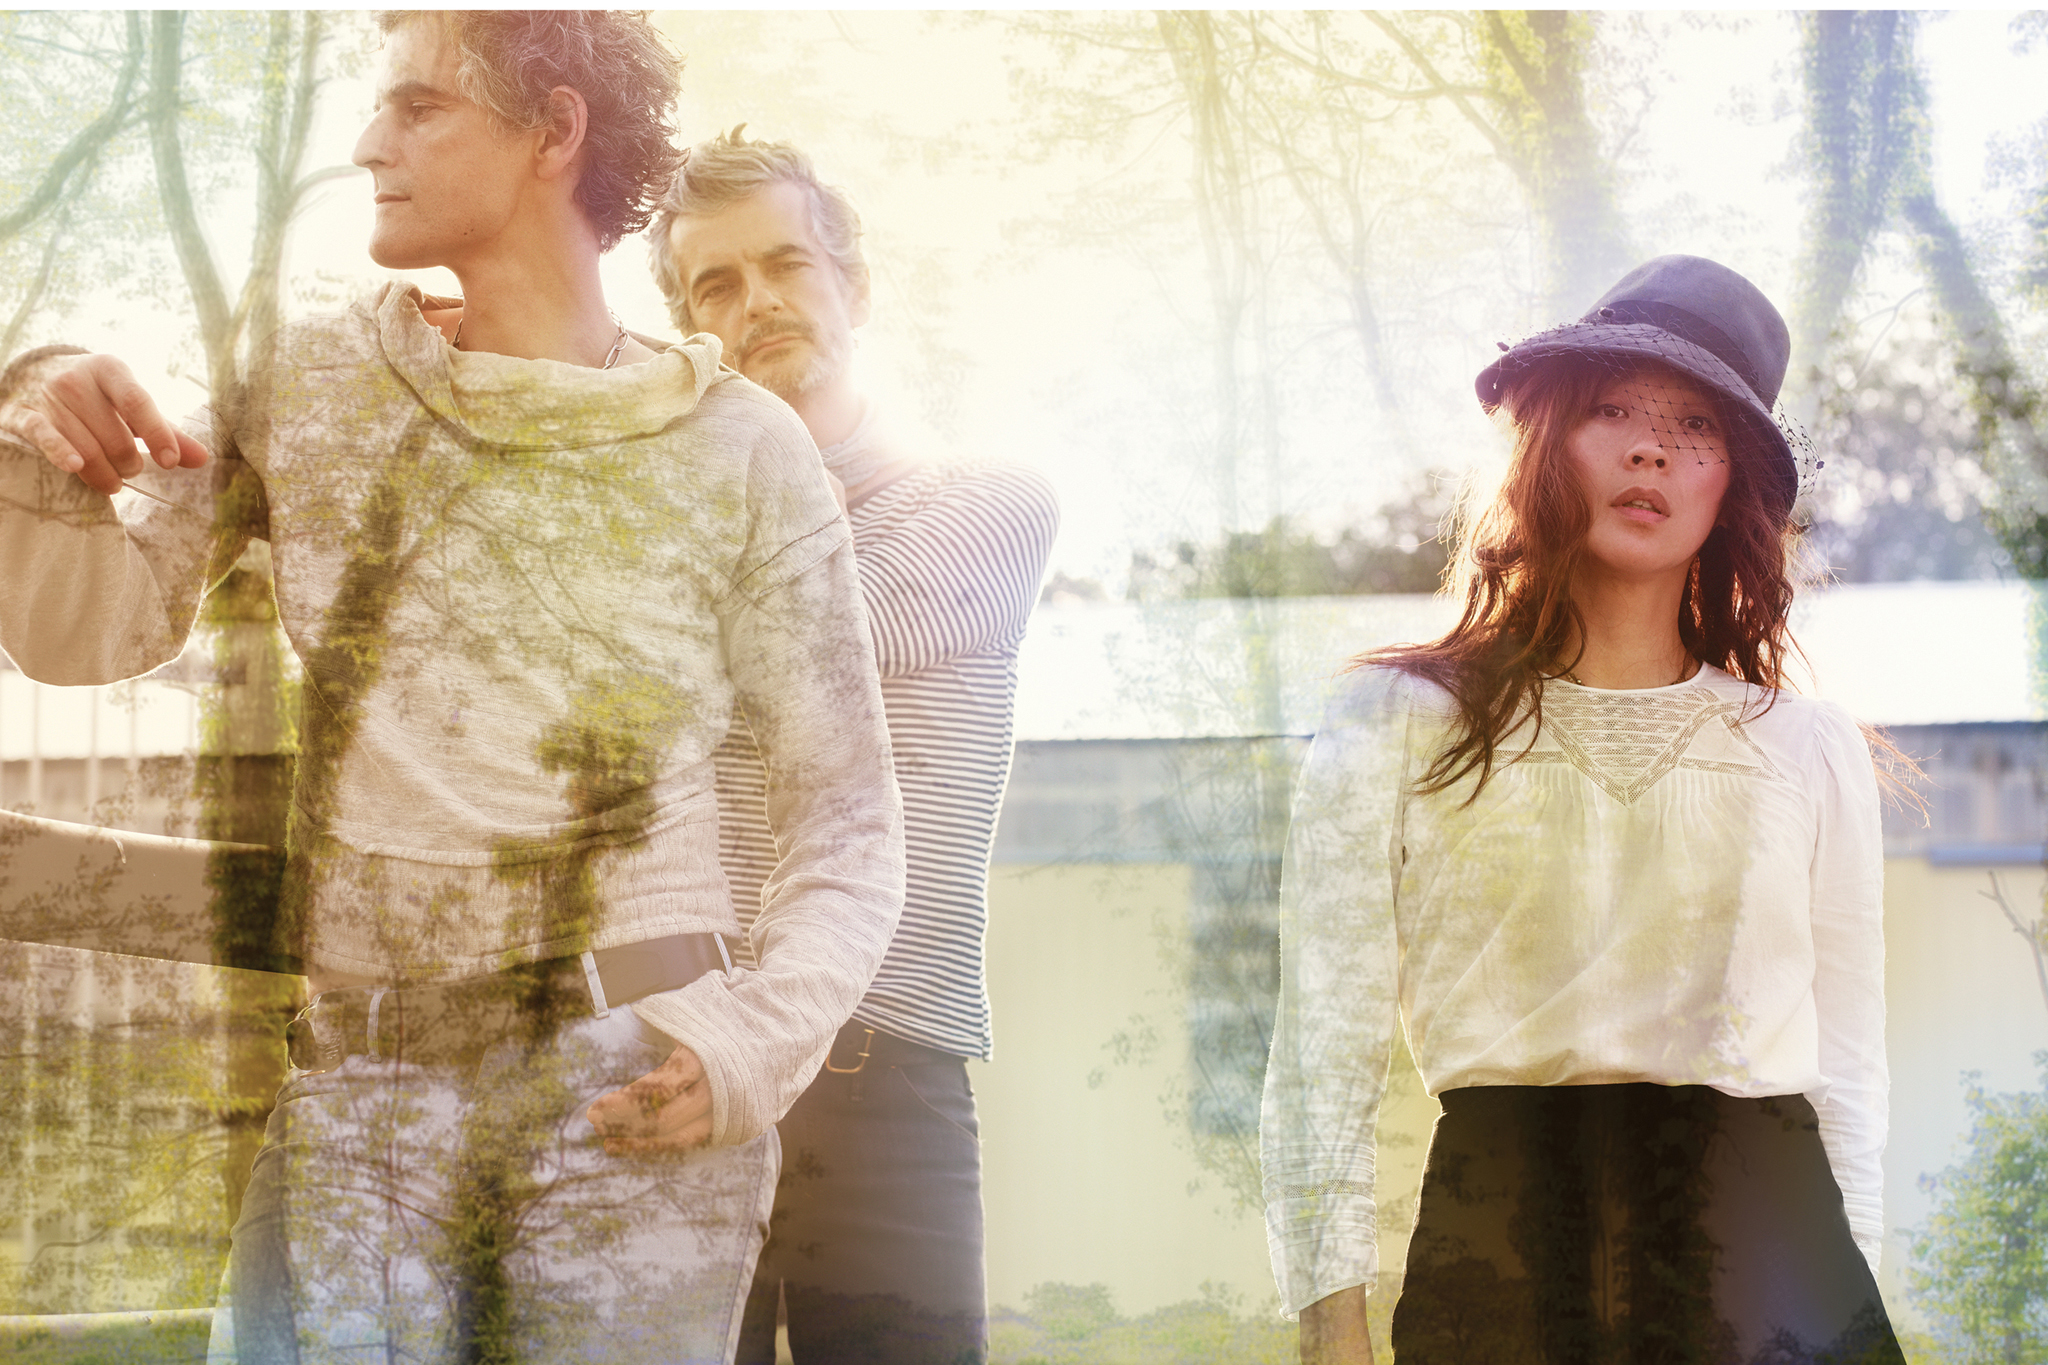 Blonde Redhead giveaway new track, 'The One I Know'